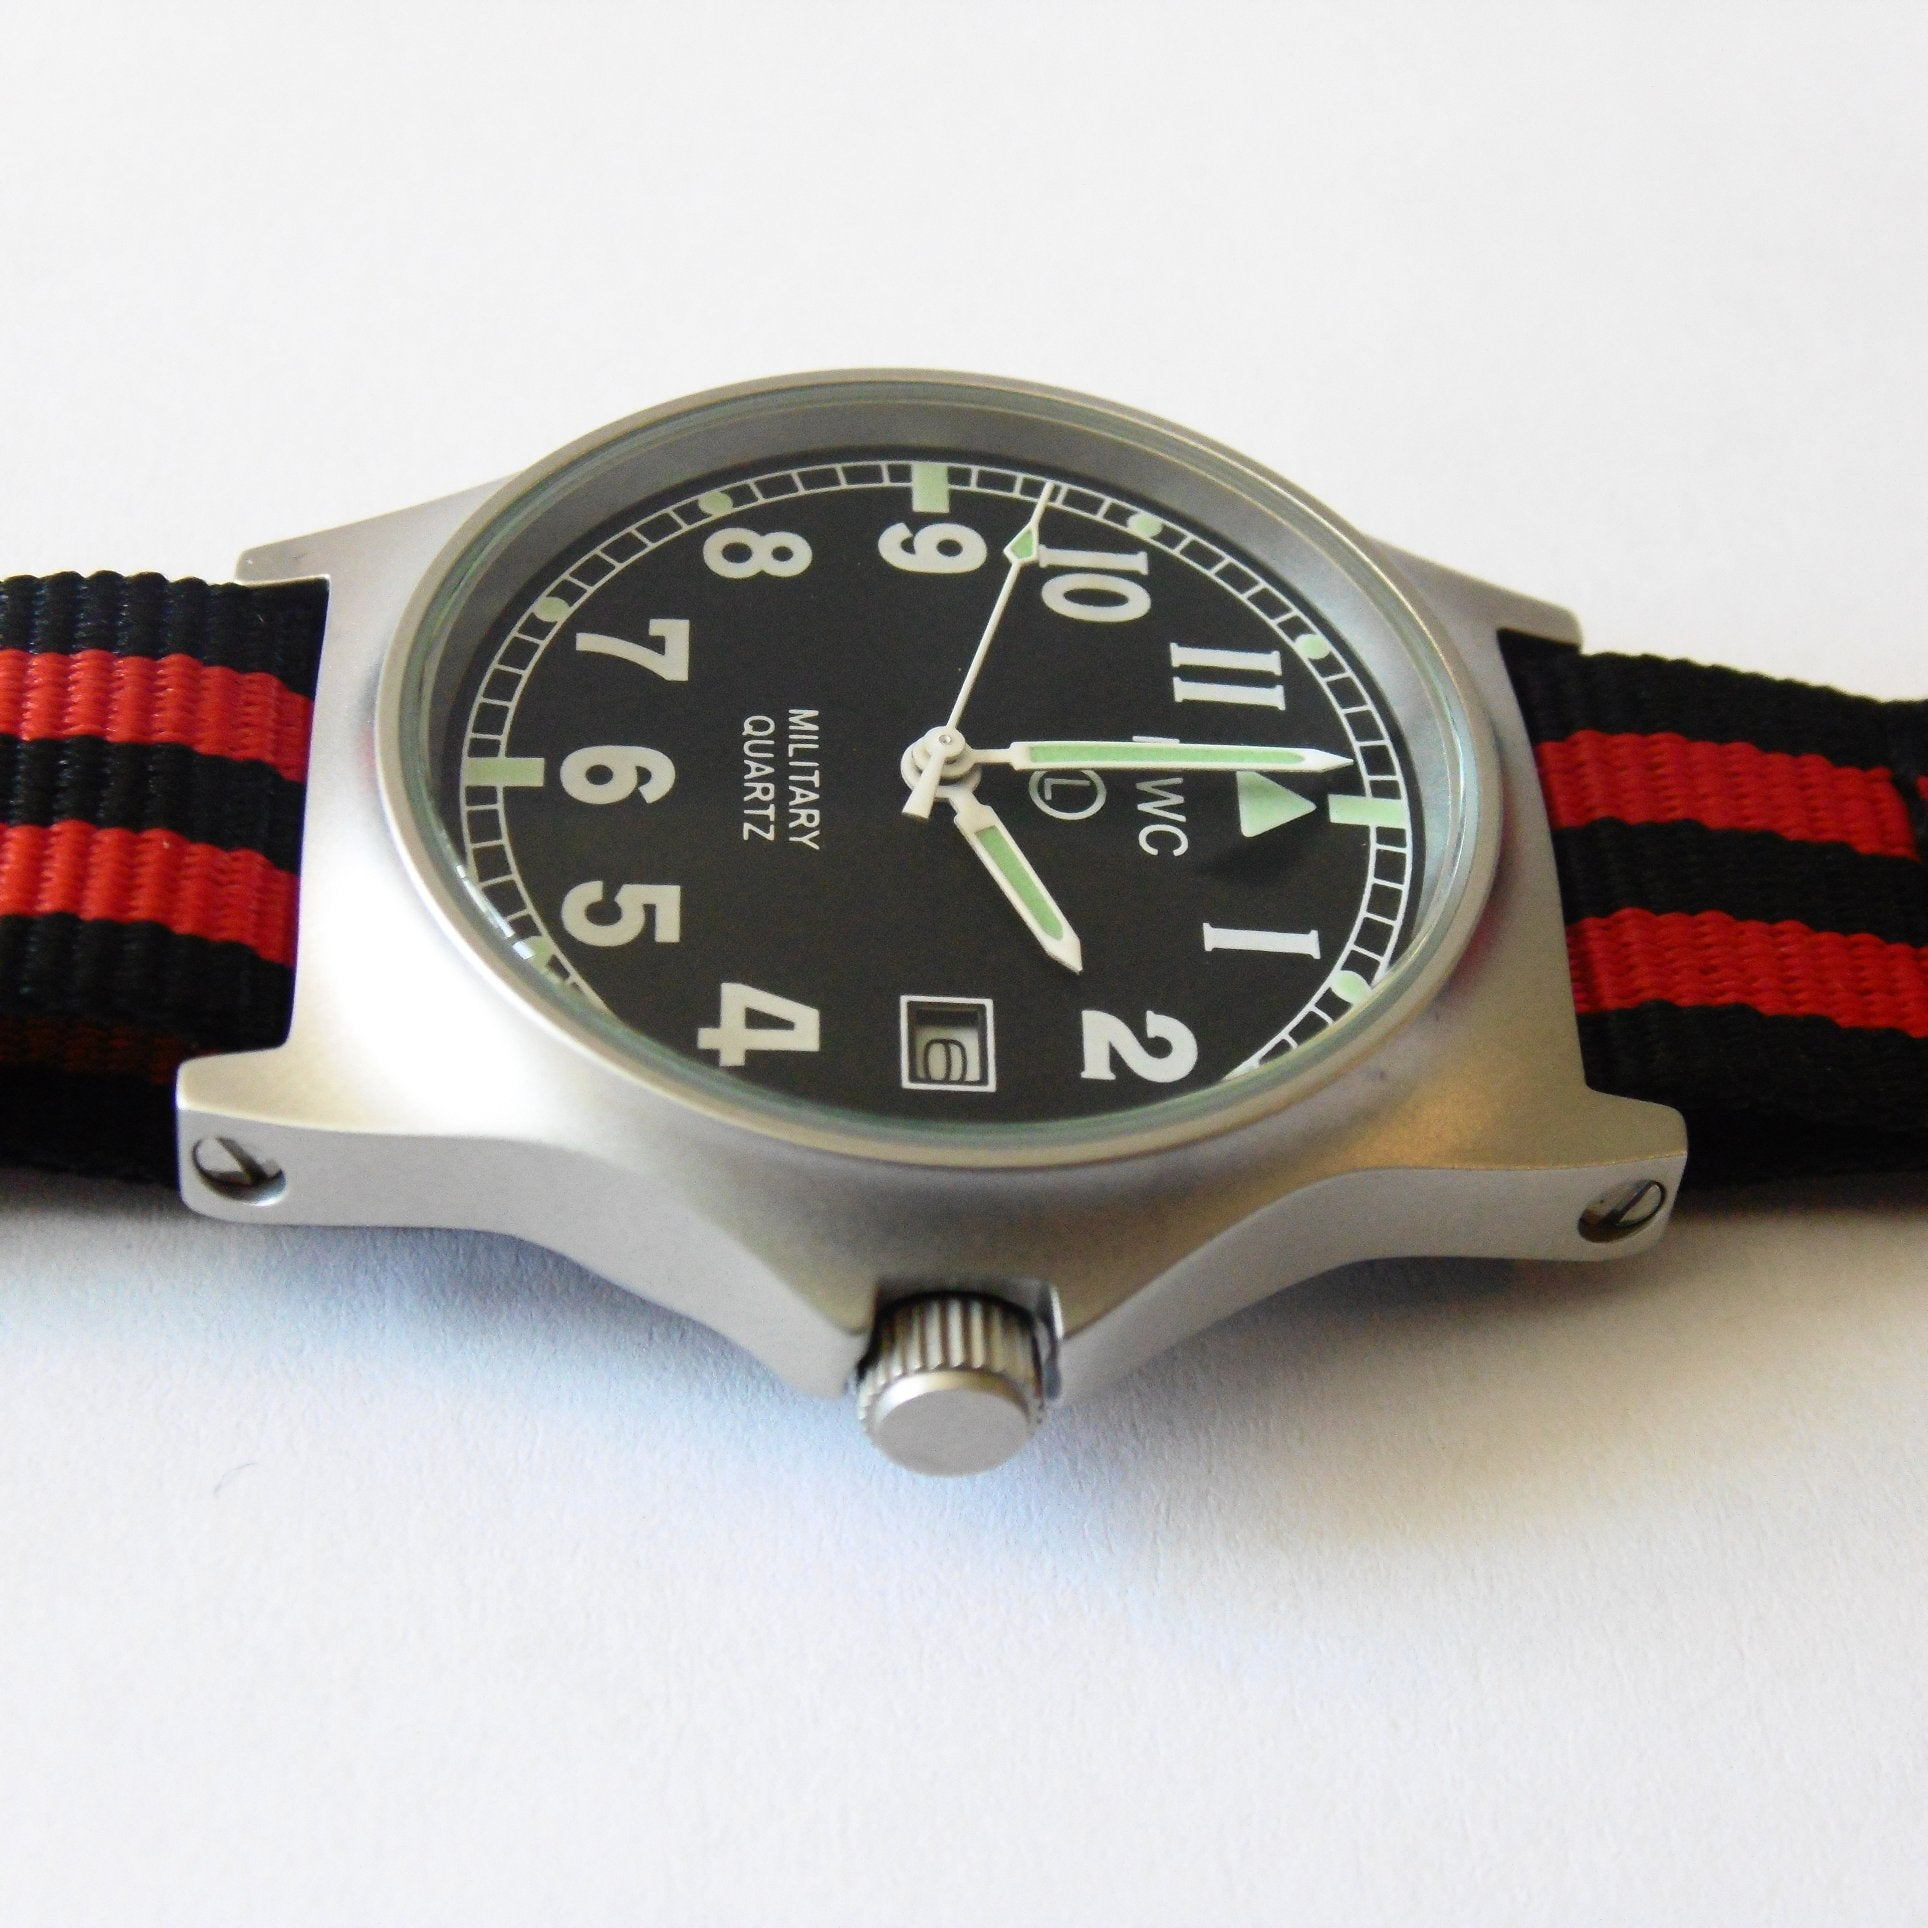 MWC G10 LM Military Watch (Luftwaffe Strap) - Watchfinder General - UK suppliers of Russian Vostok Parnis Watches MWC G10  - 3